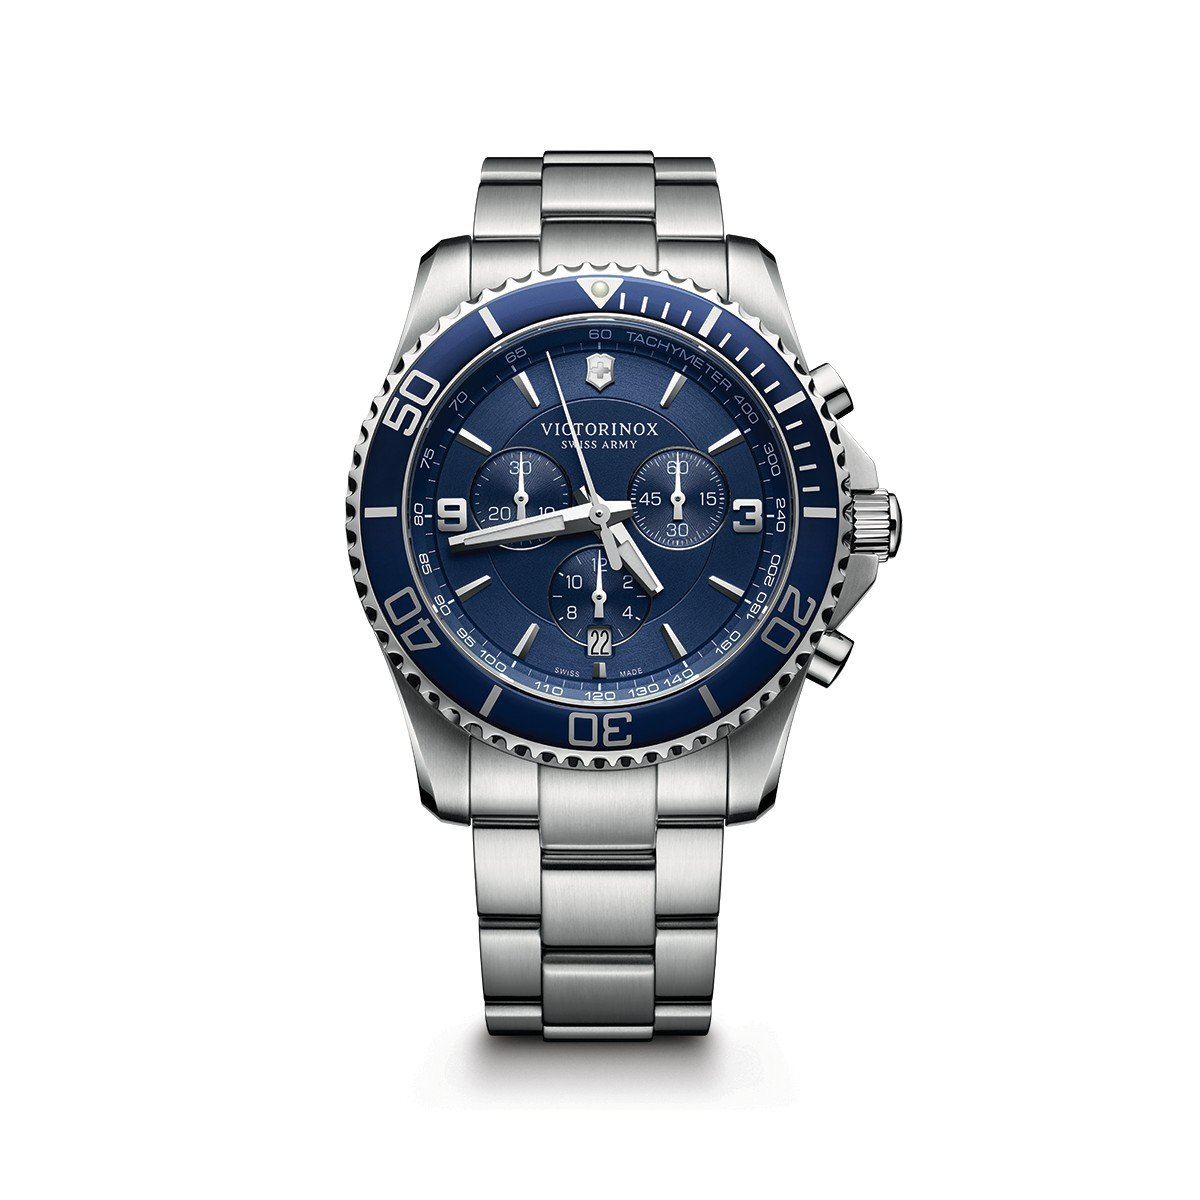 Victorinox Mens Maverick Chrono Swiss Quartz Chronograph Watch Parts Diagram Related Images Stainless Steel Casual Colorblue Model 241689 Army